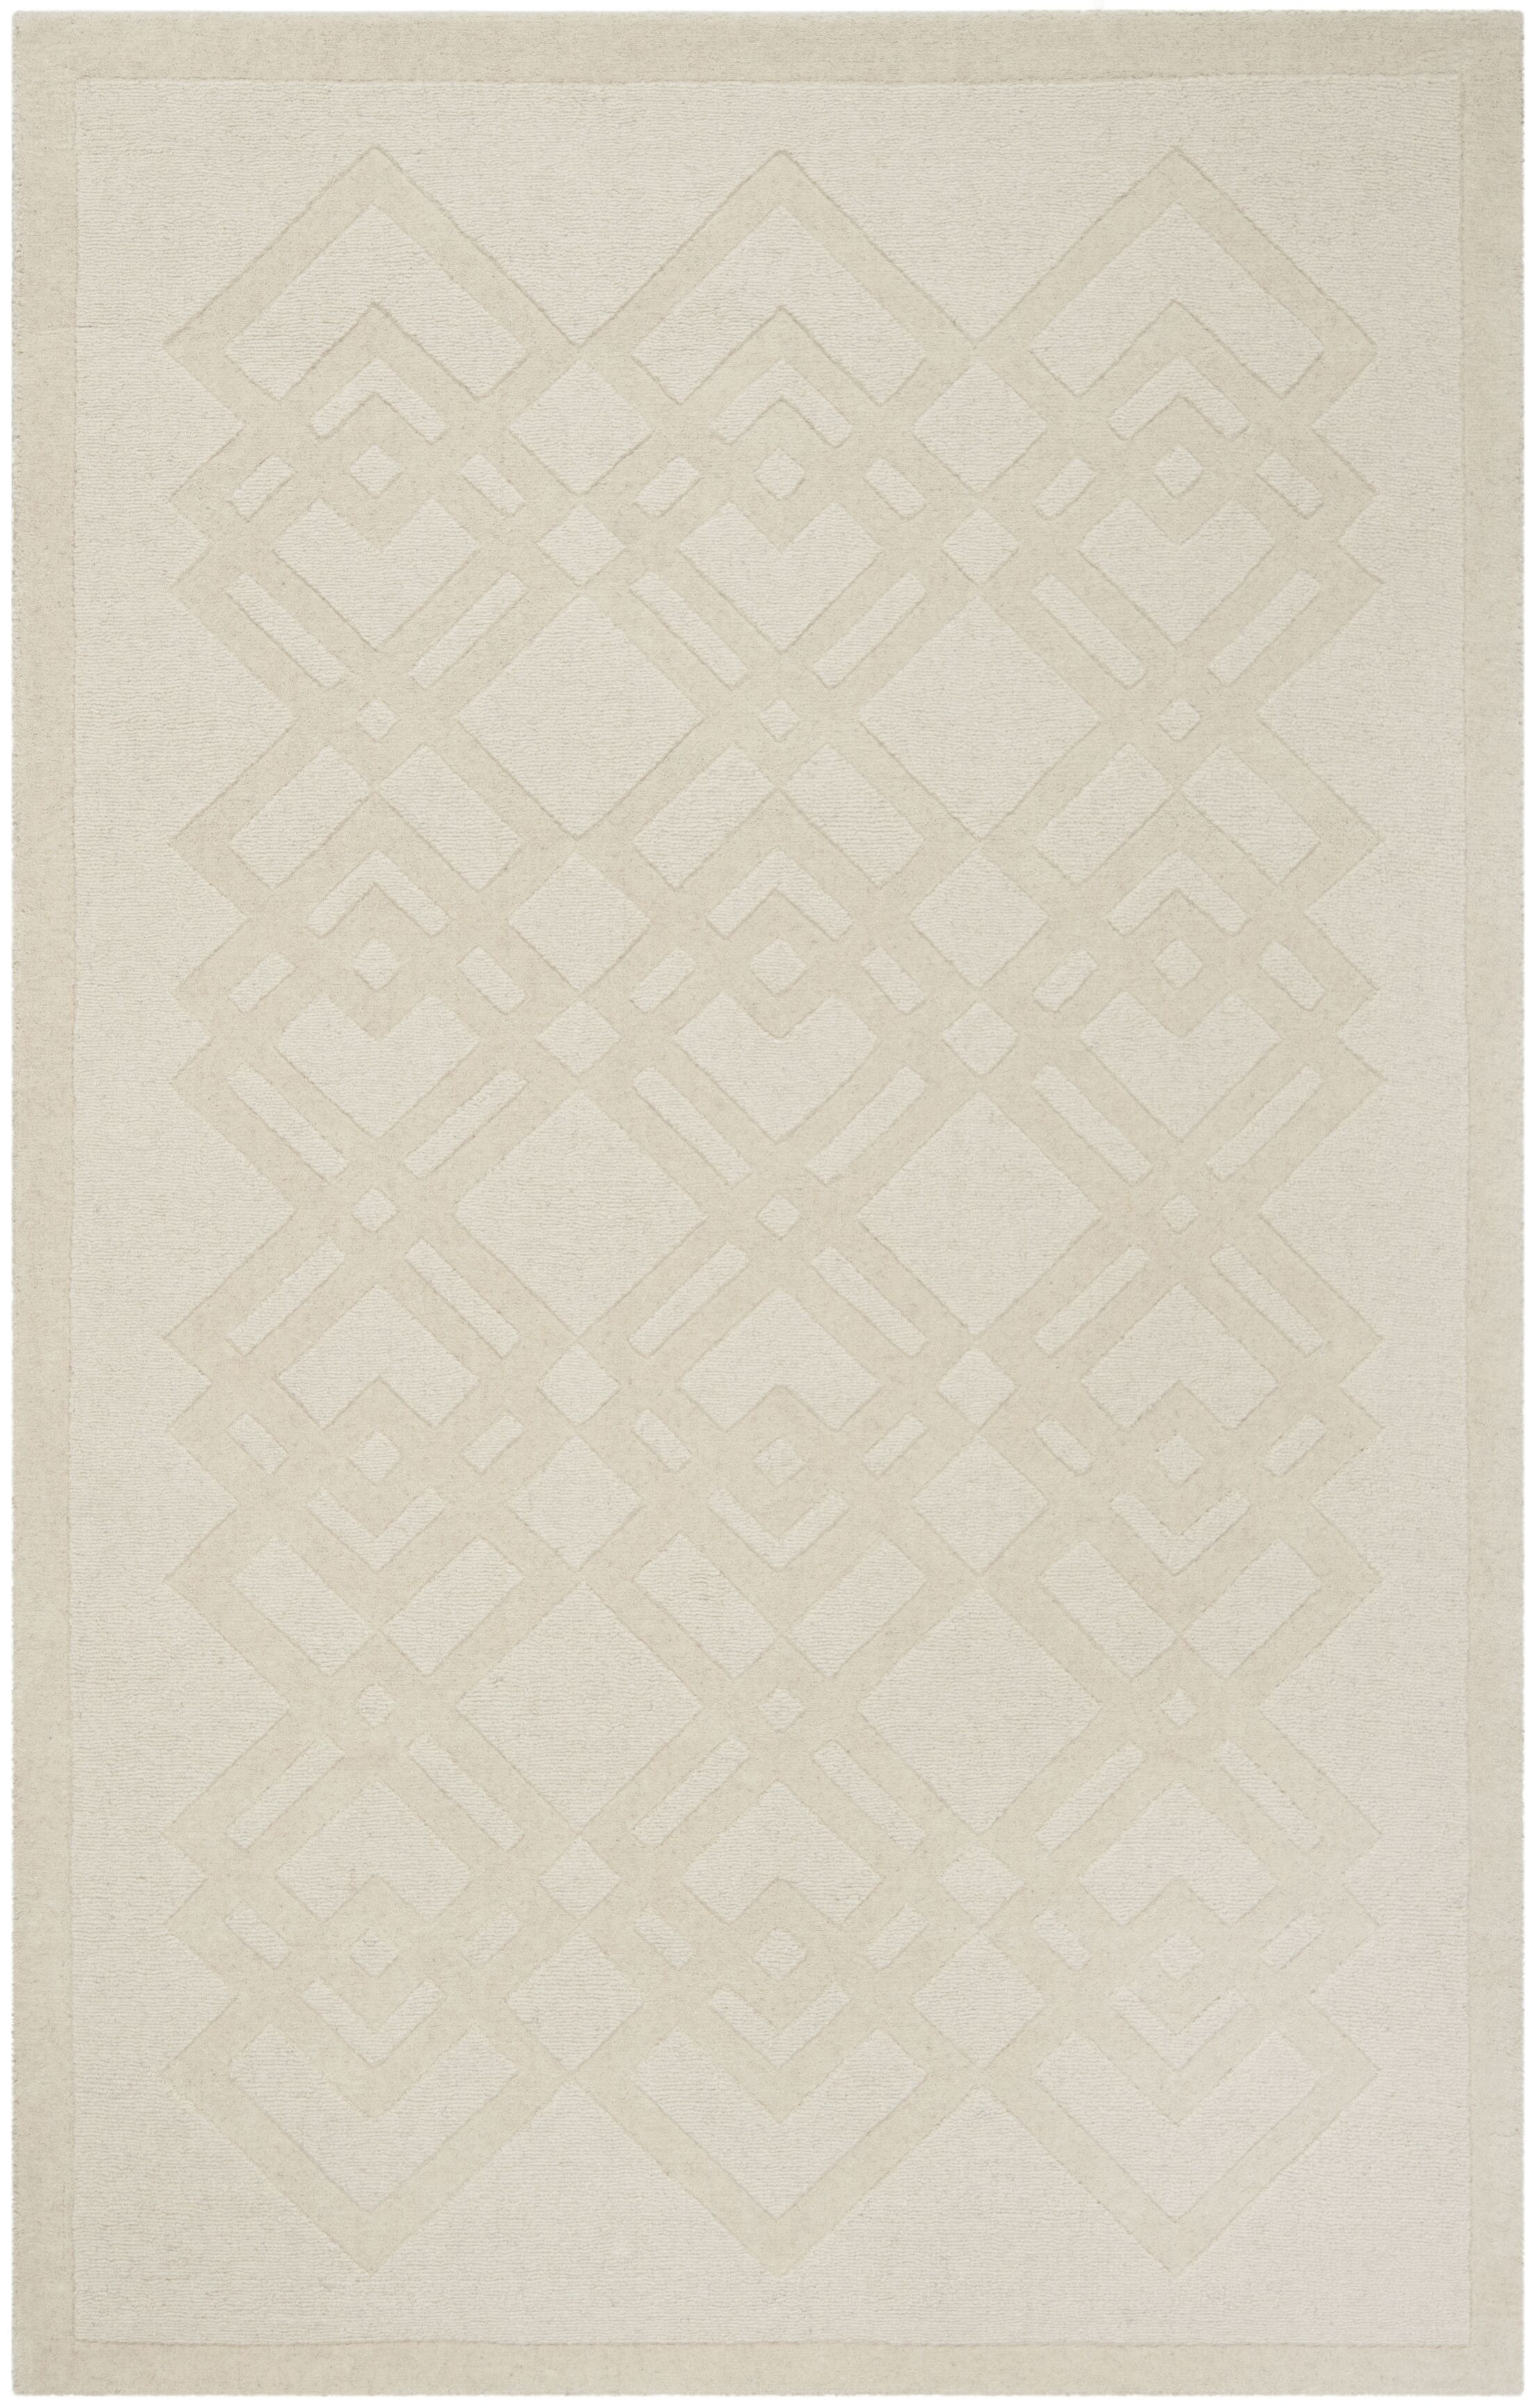 Viewpoint Carved Ivory Area Rug Rug Size: Rectangle 8' x 10'